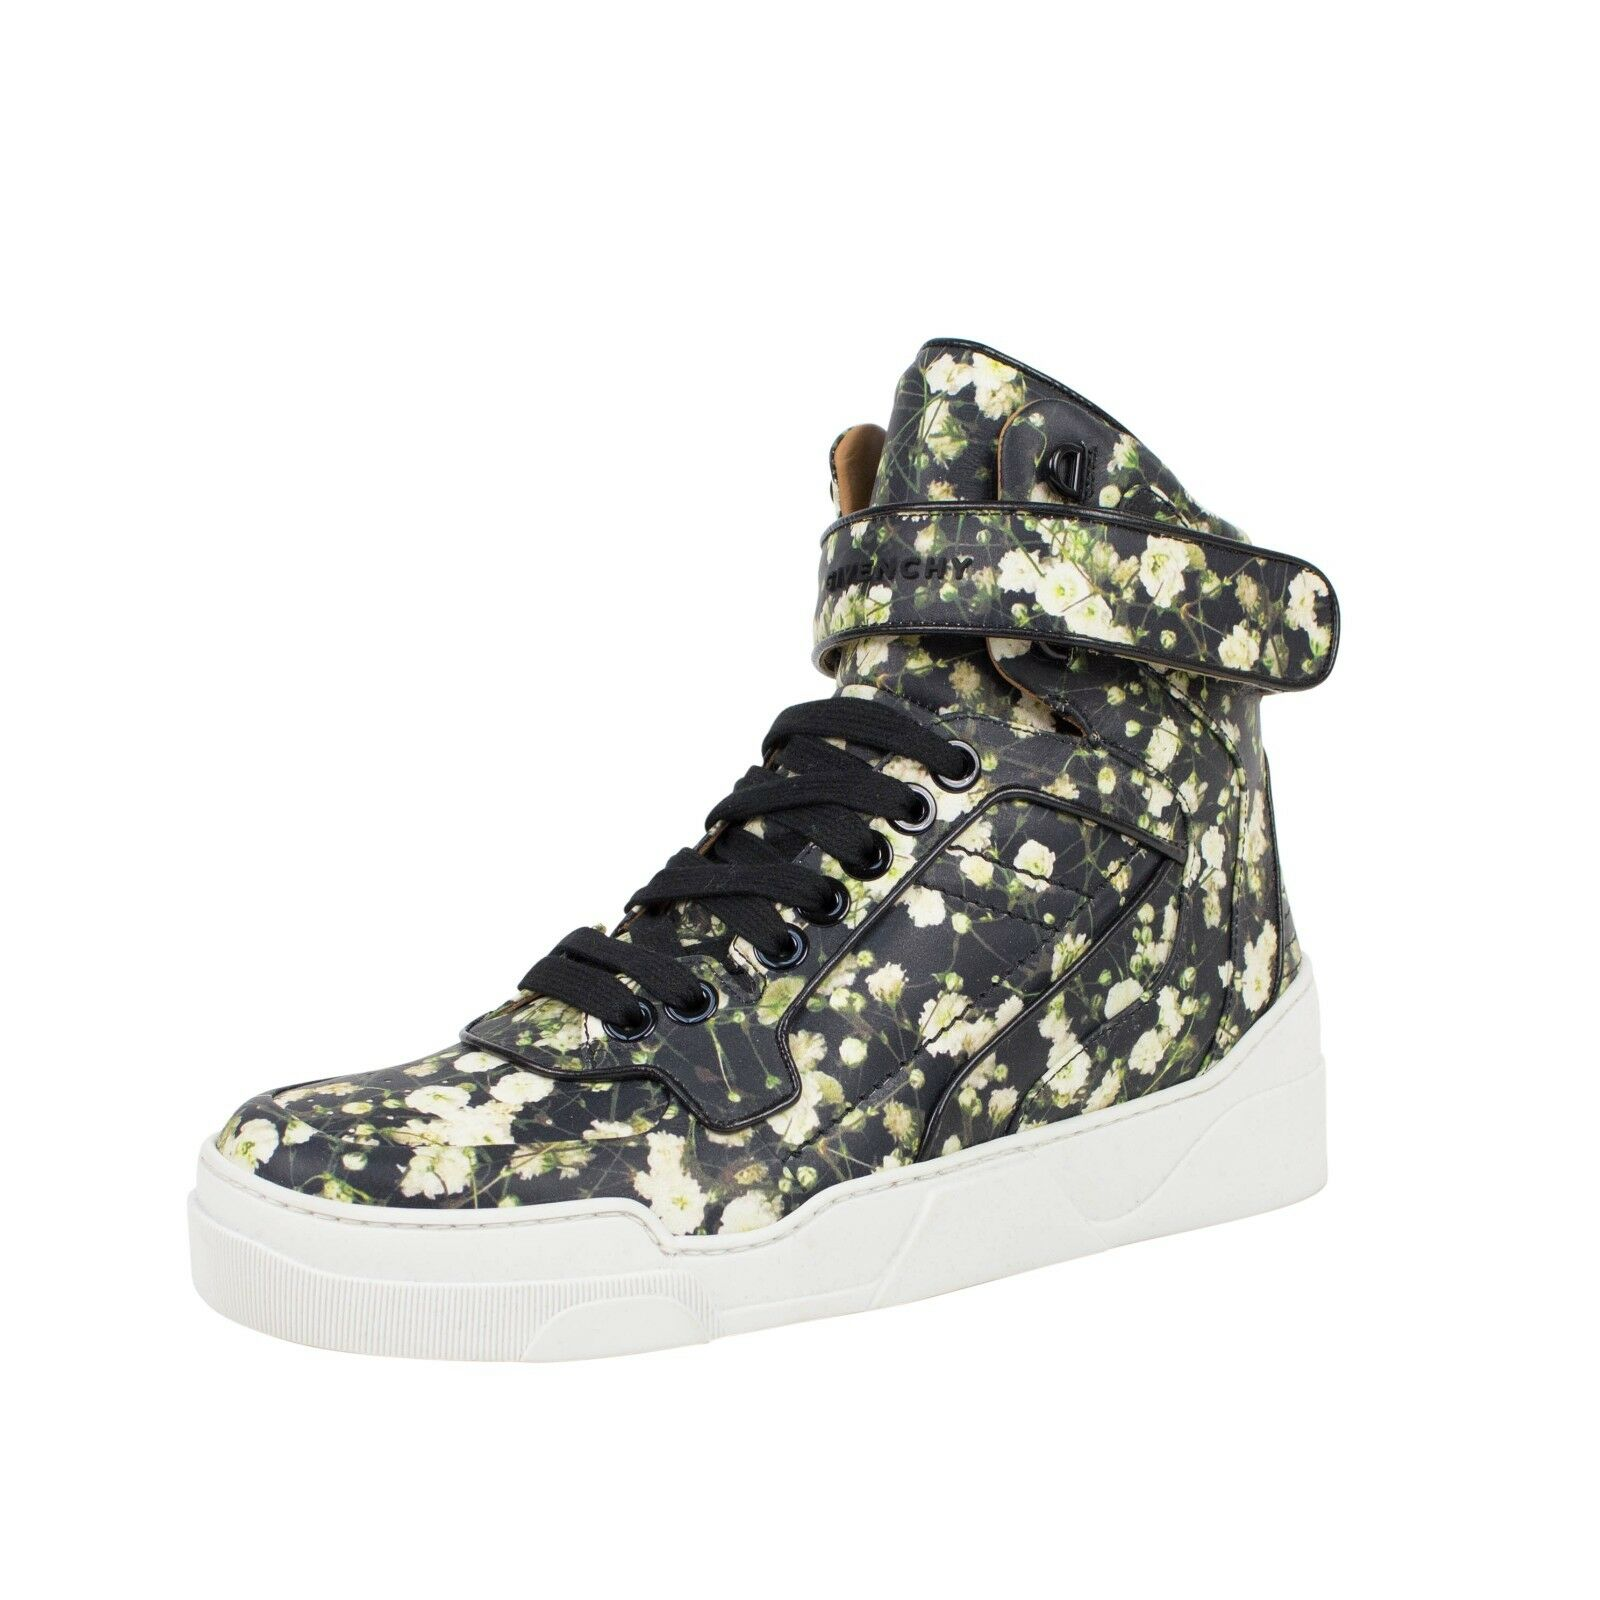 NIB GIVENCHY Floral Print Tyson High-Top Sneakers shoes 8 41